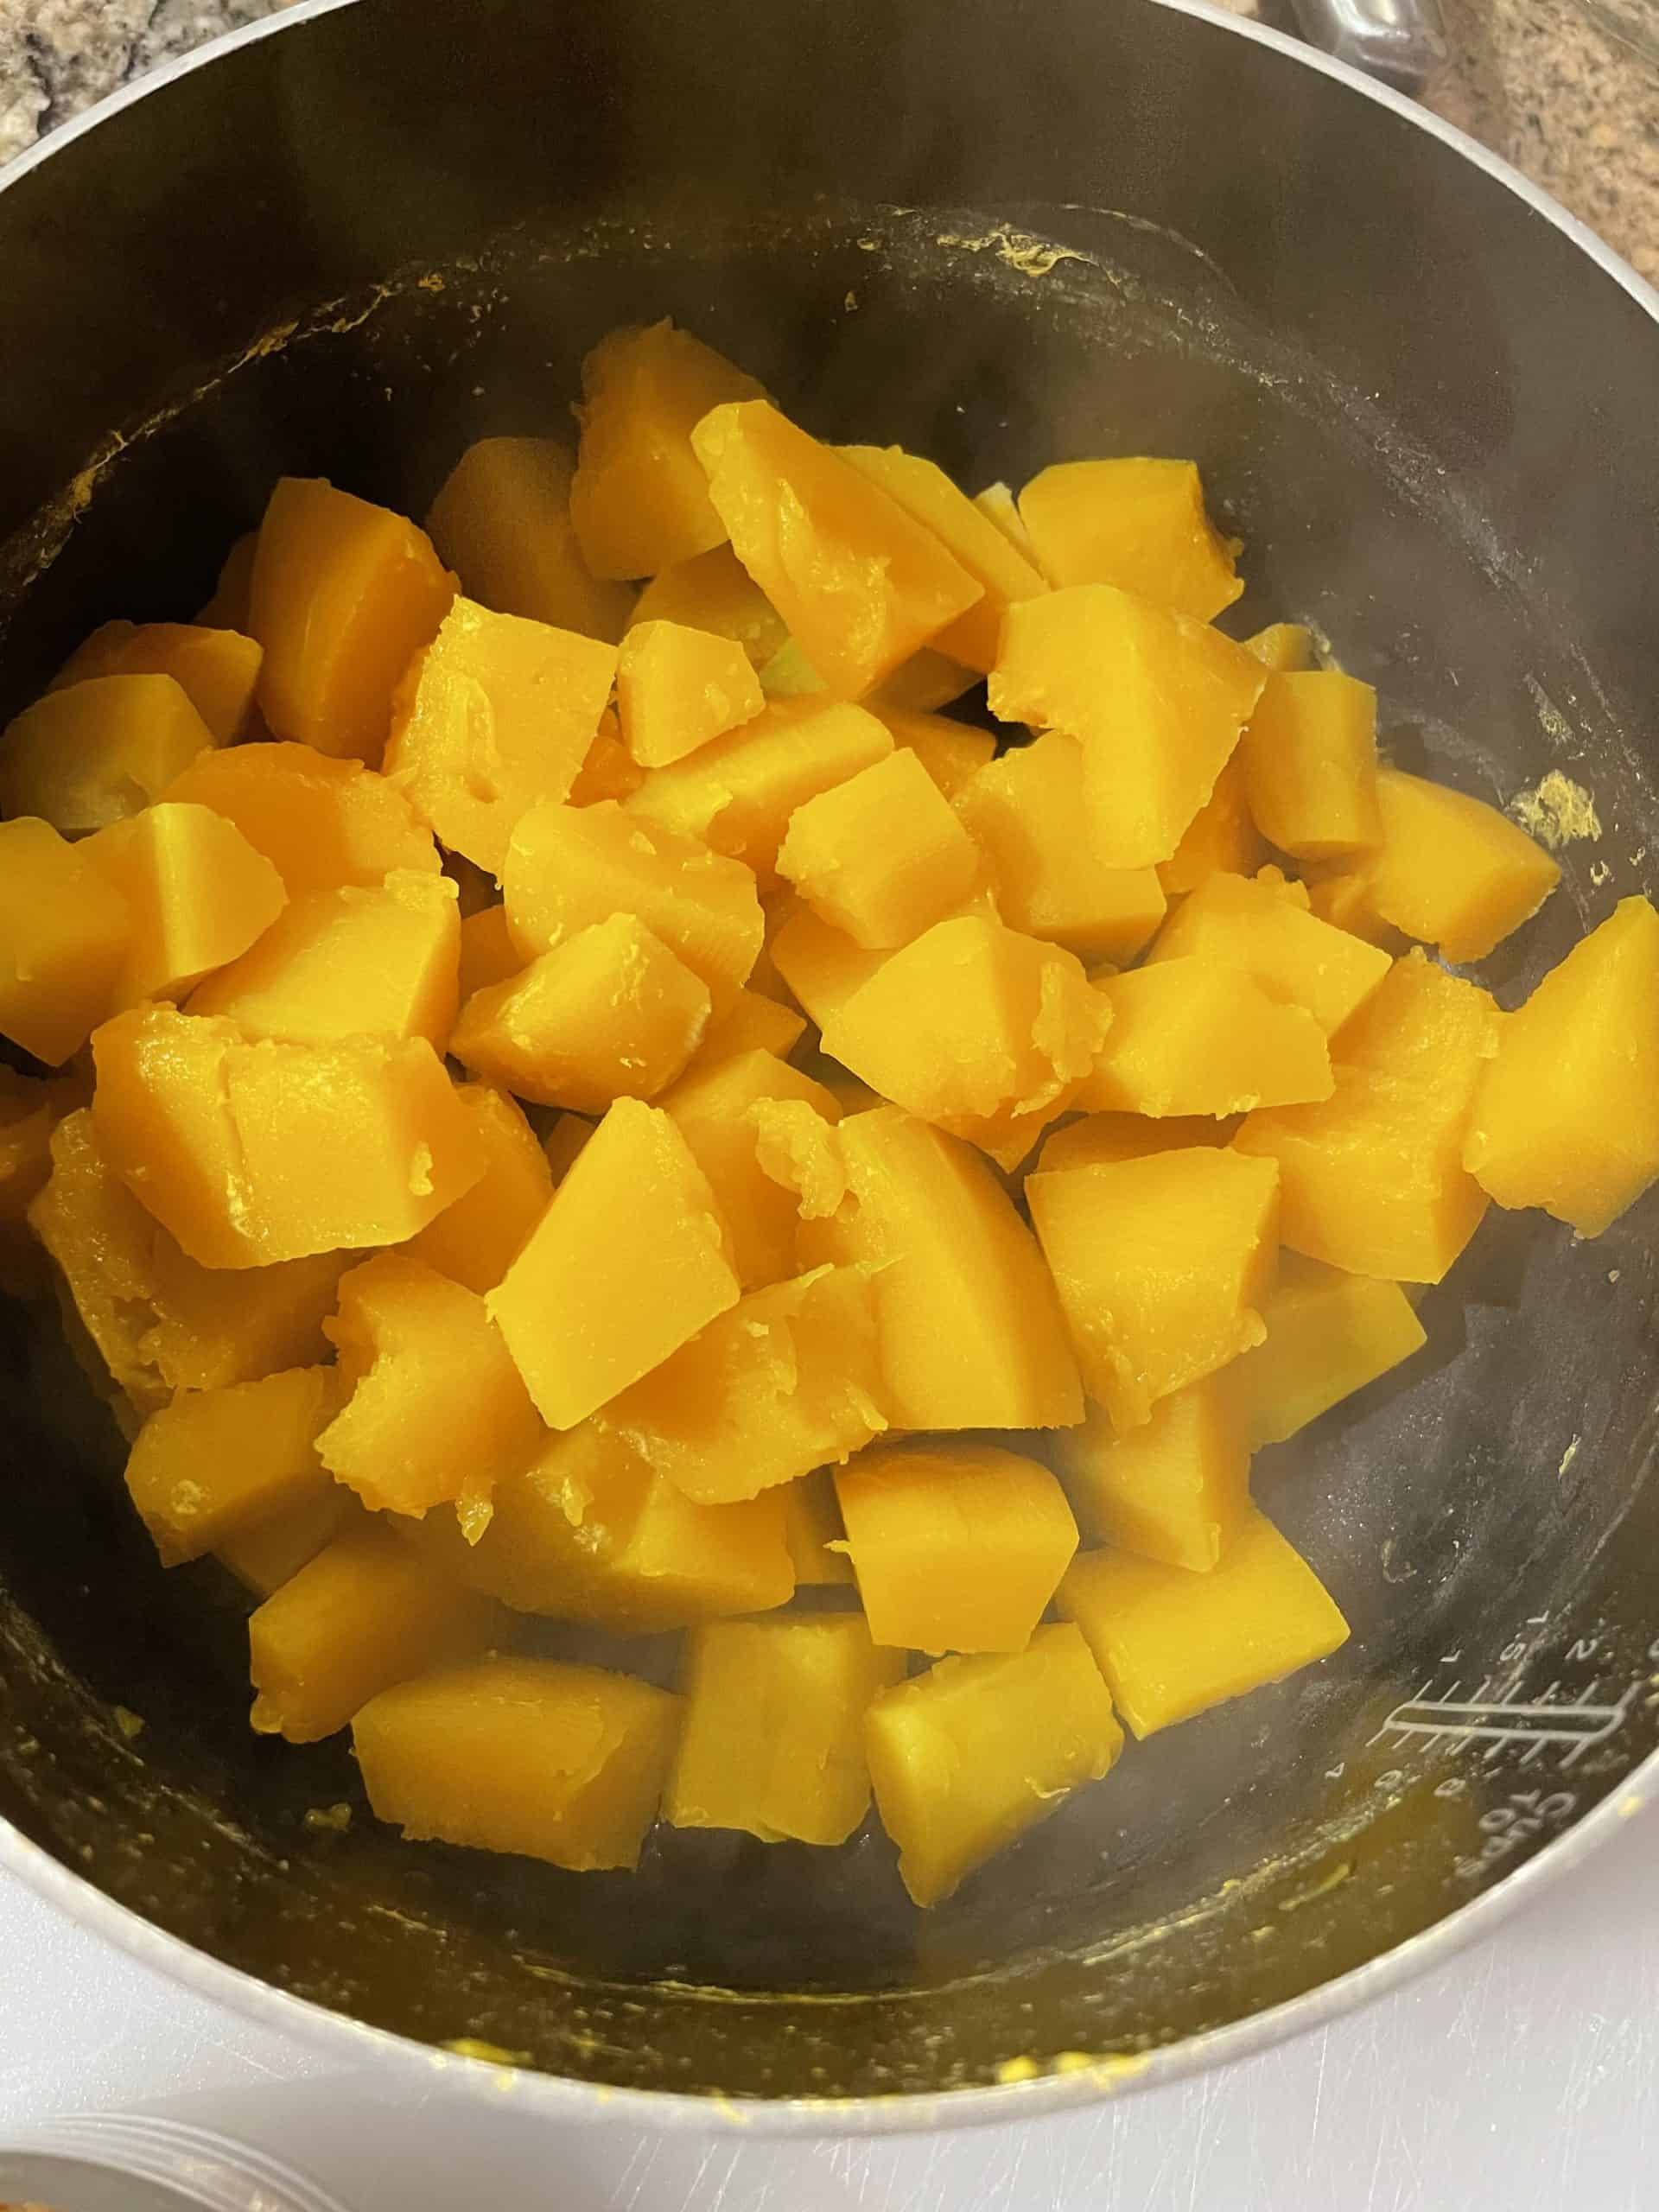 Drain the water off of the cooked squash.